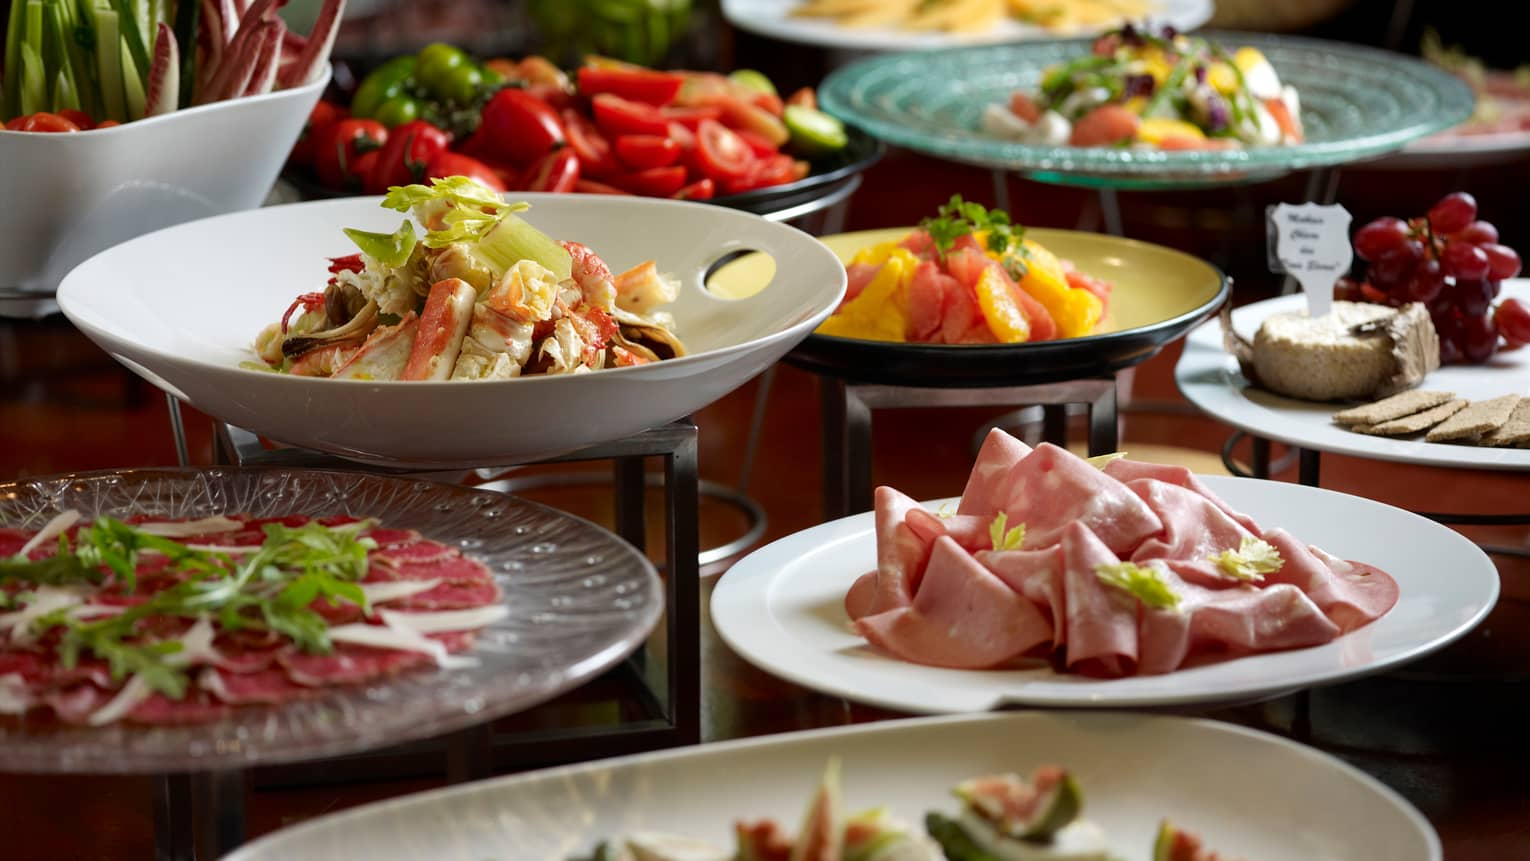 Buffet table with bowls of fresh fruit, salads, deli meats, cheeses